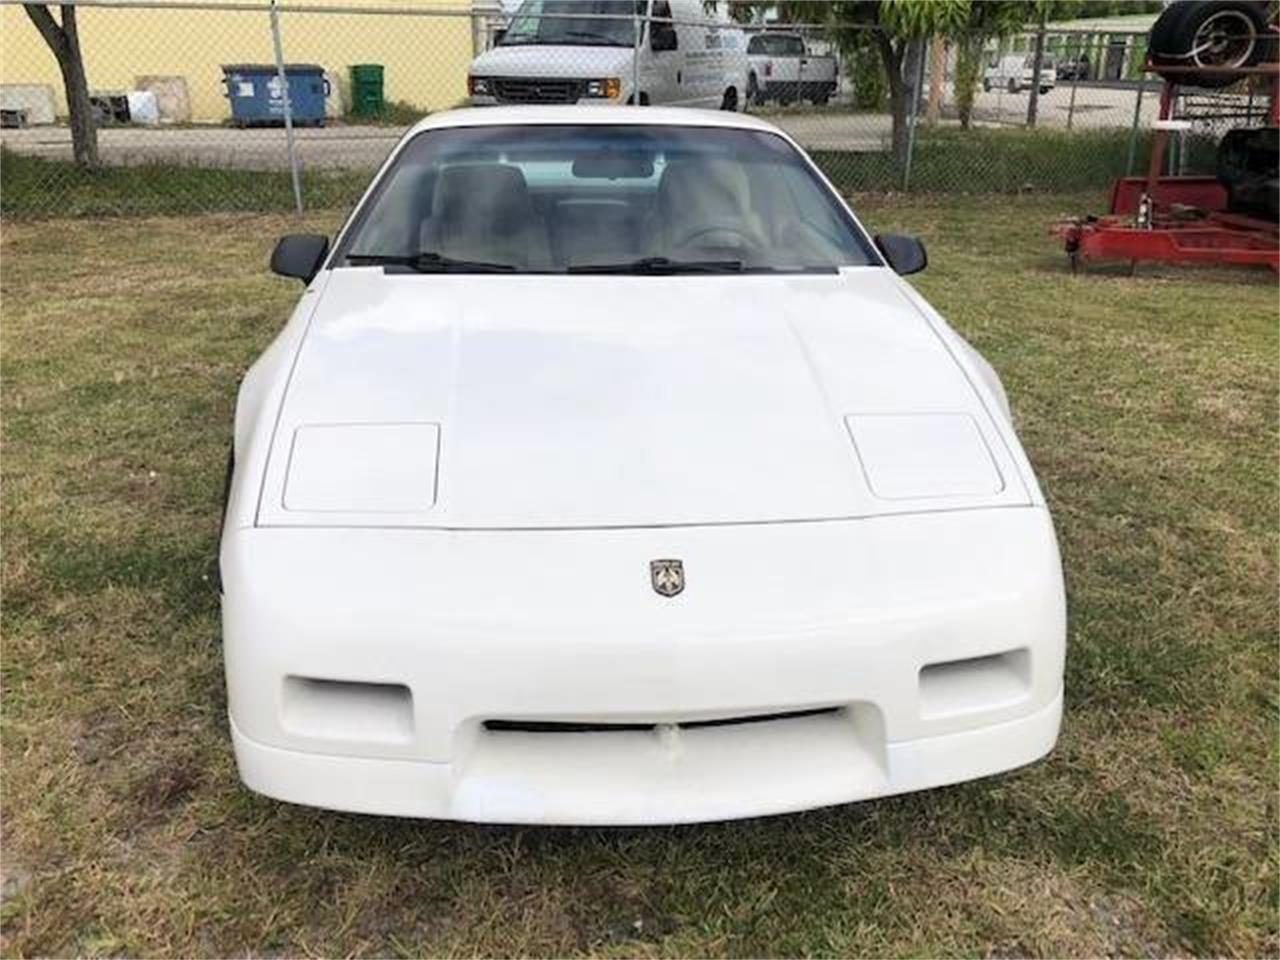 Large Picture of '88 Pontiac Fiero located in New York - POWM